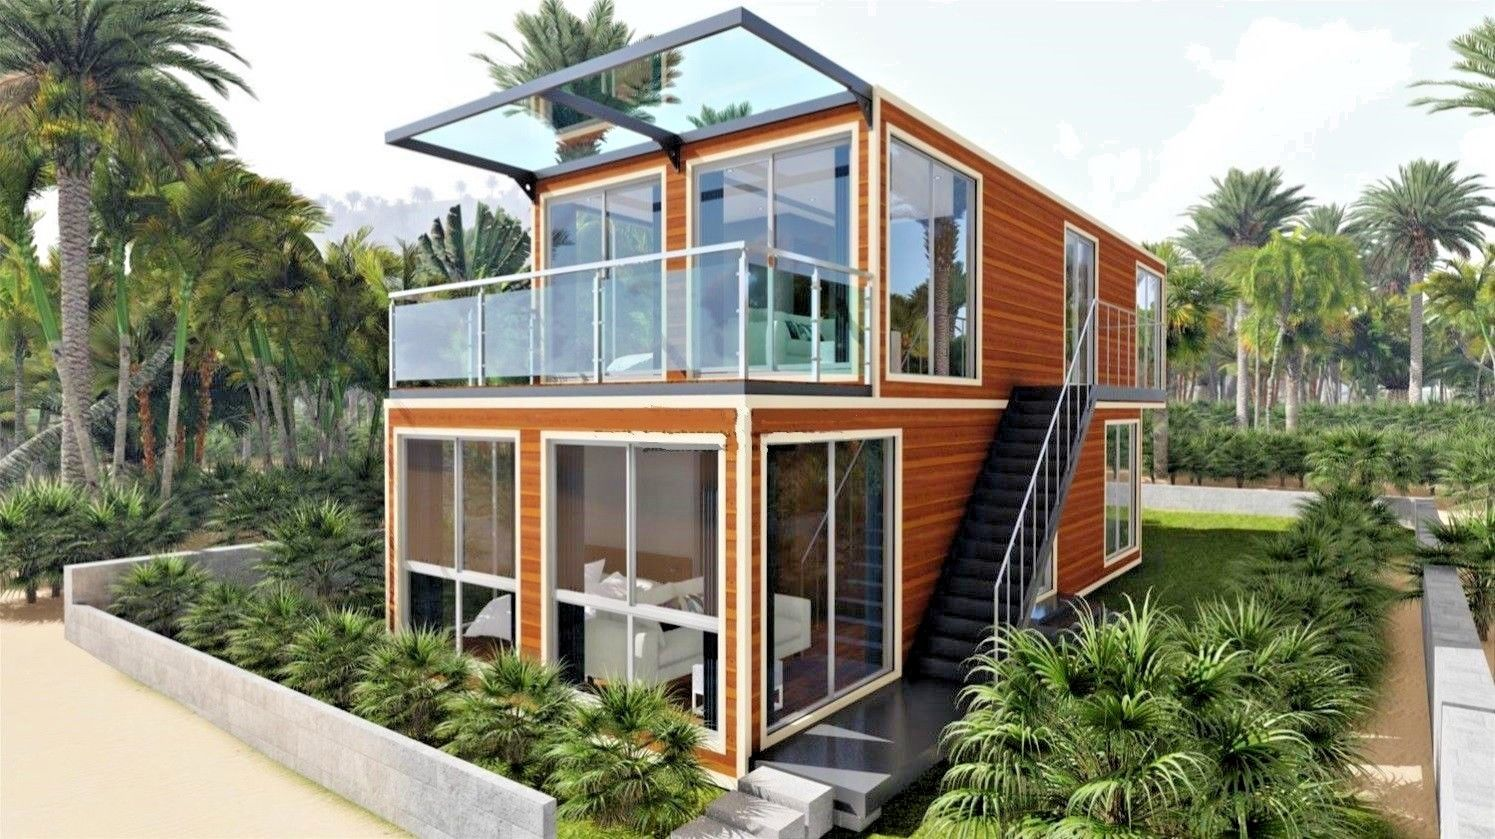 40 Shipping Containers For Sale Ebay >> Shipping Container Homes For Sale On Ebay Apartment Therapy